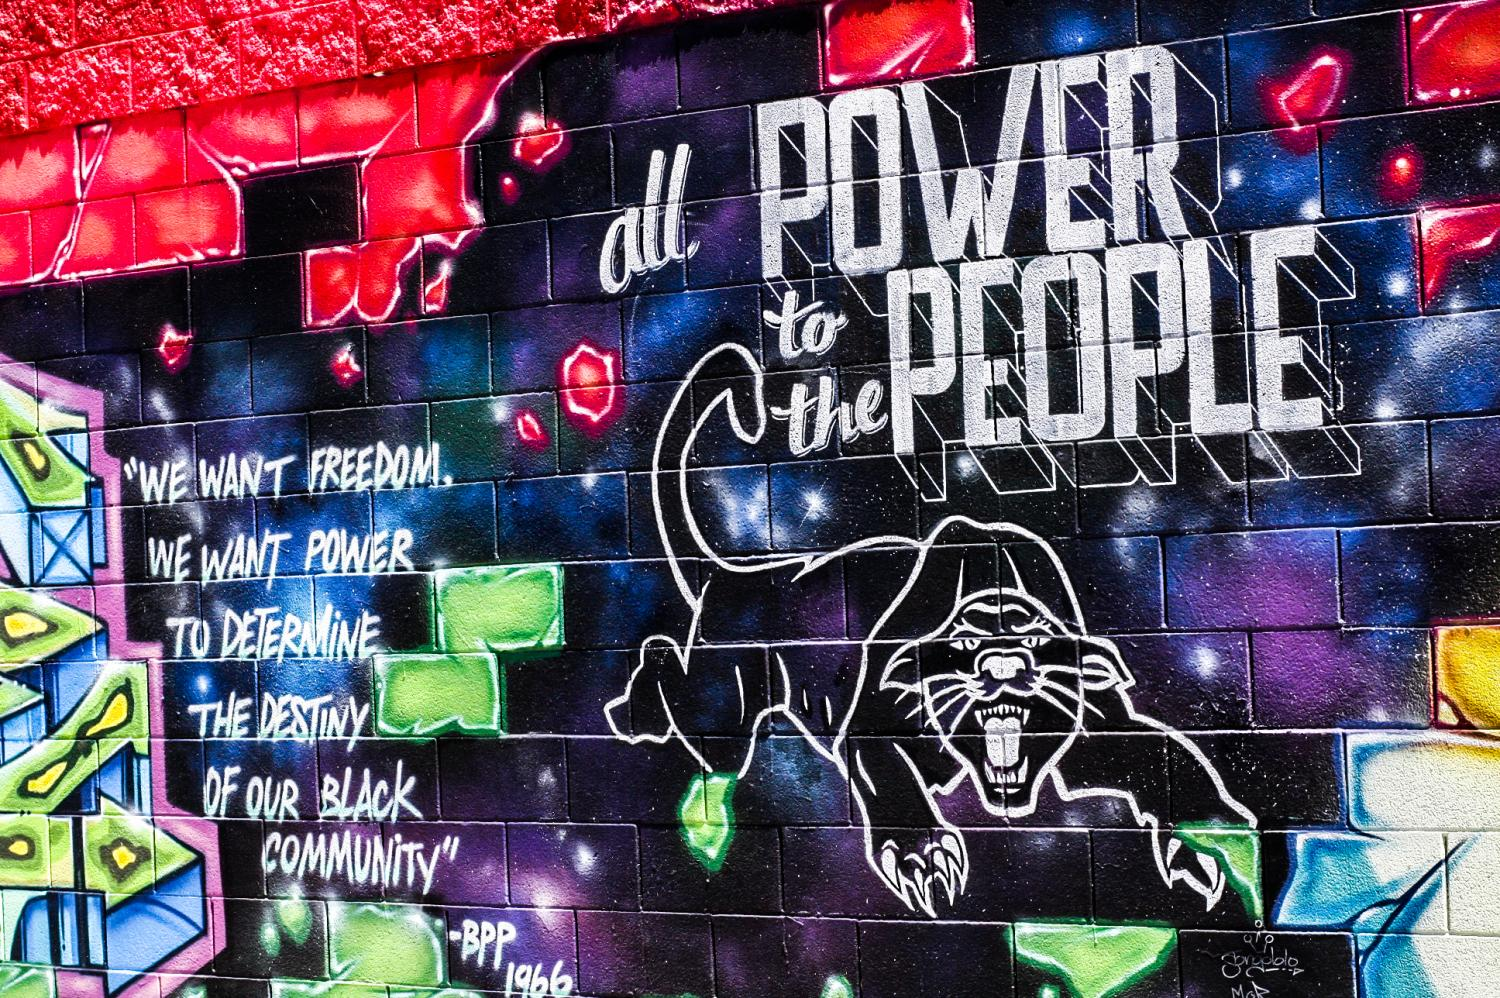 A+powerful+message+taken+from+the+Black+Panther+Party%2C+a+piece+from+the+mural.+2976+Market+St%2C+Oakland%2C+CA%2C+94612.